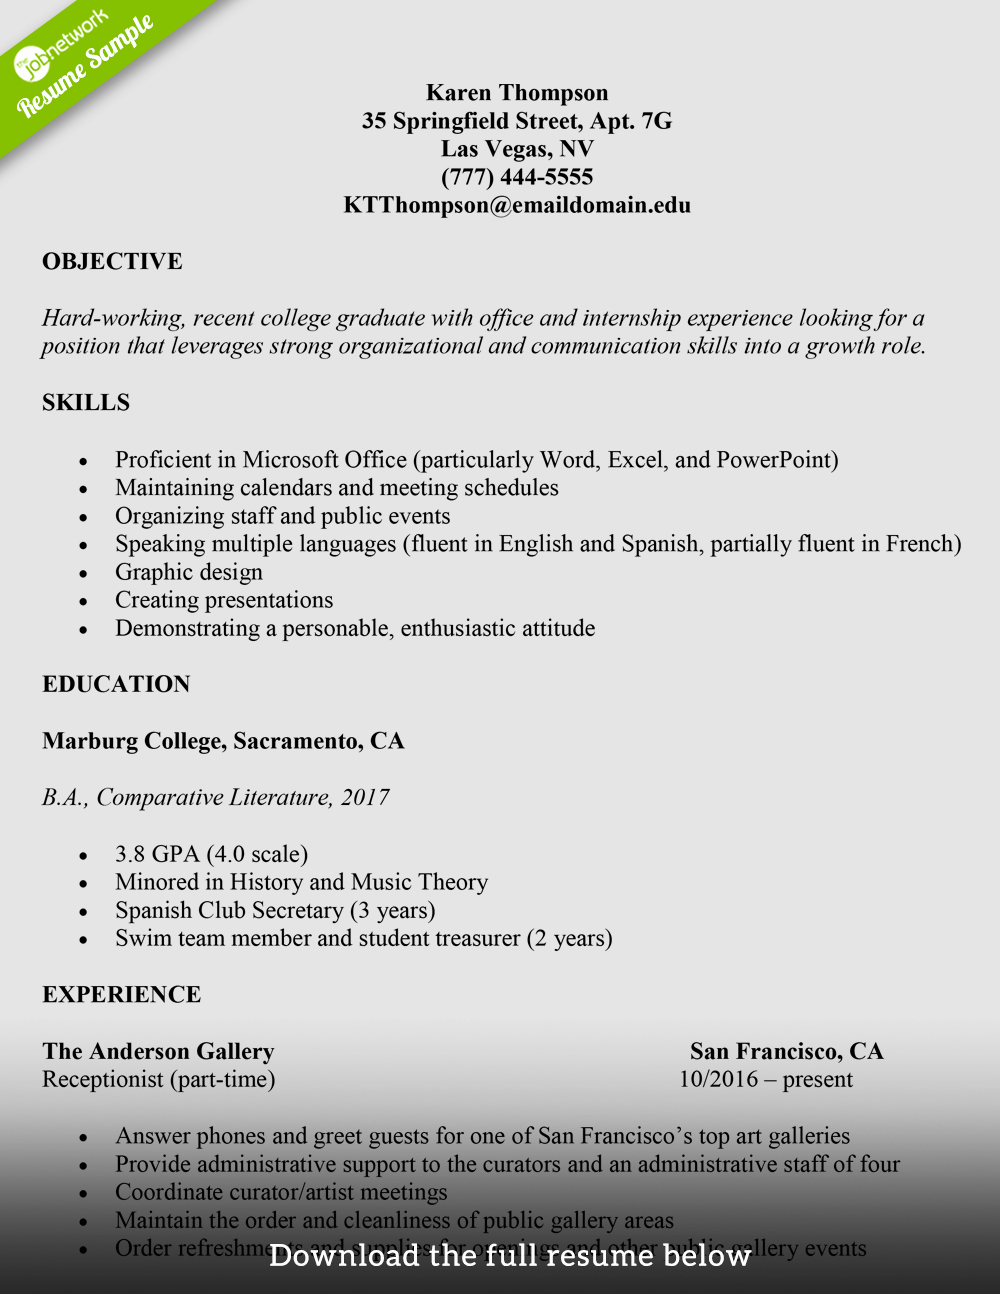 College Graduate Resume Template Fresh How to Write A College Student Resume with Examples